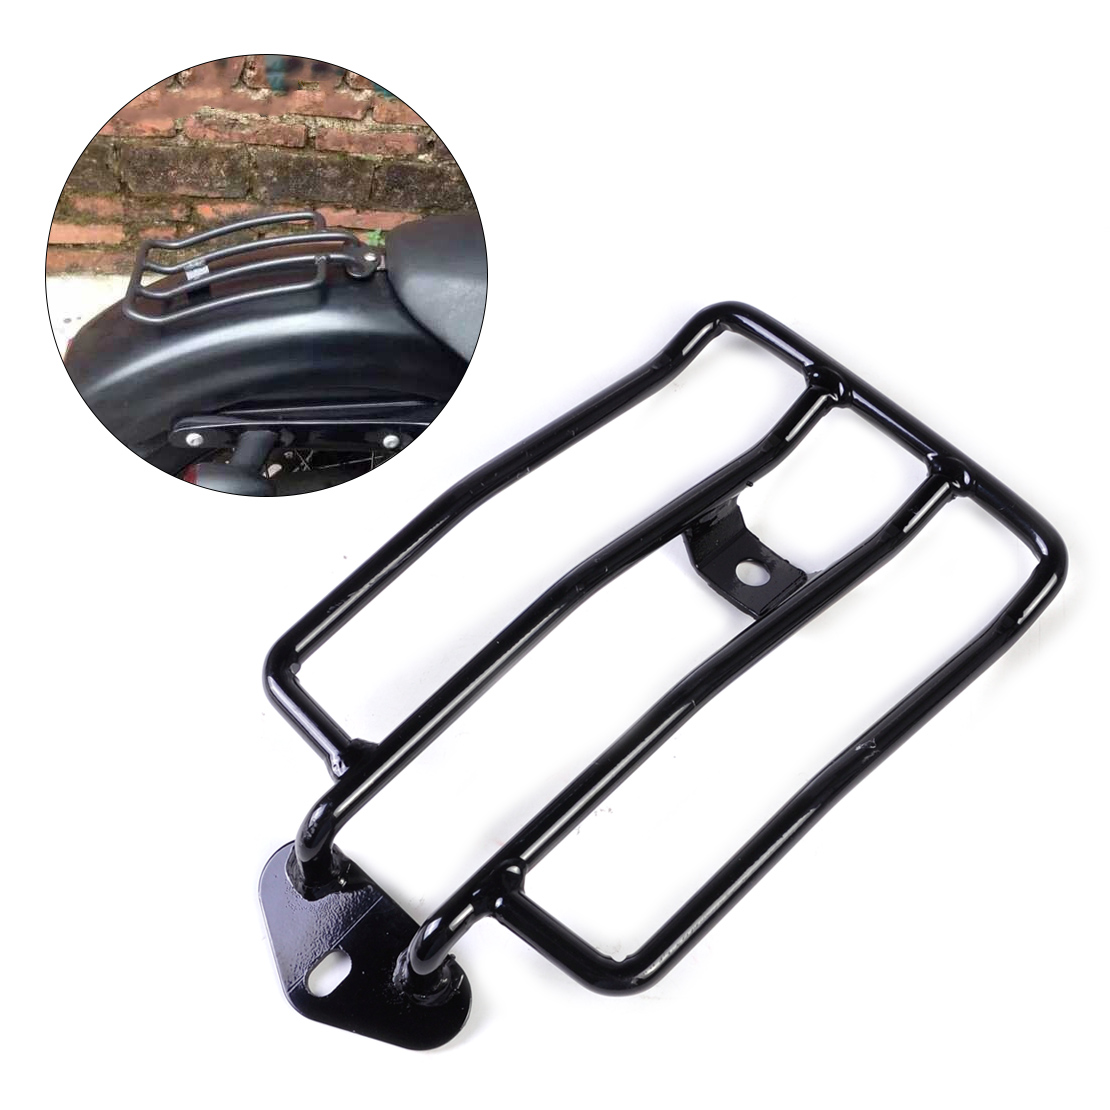 DWCX Black Seat Luggage Shelf Carrier Support Rack for Harley Sportster 1200 883 with stock solo seat<br>